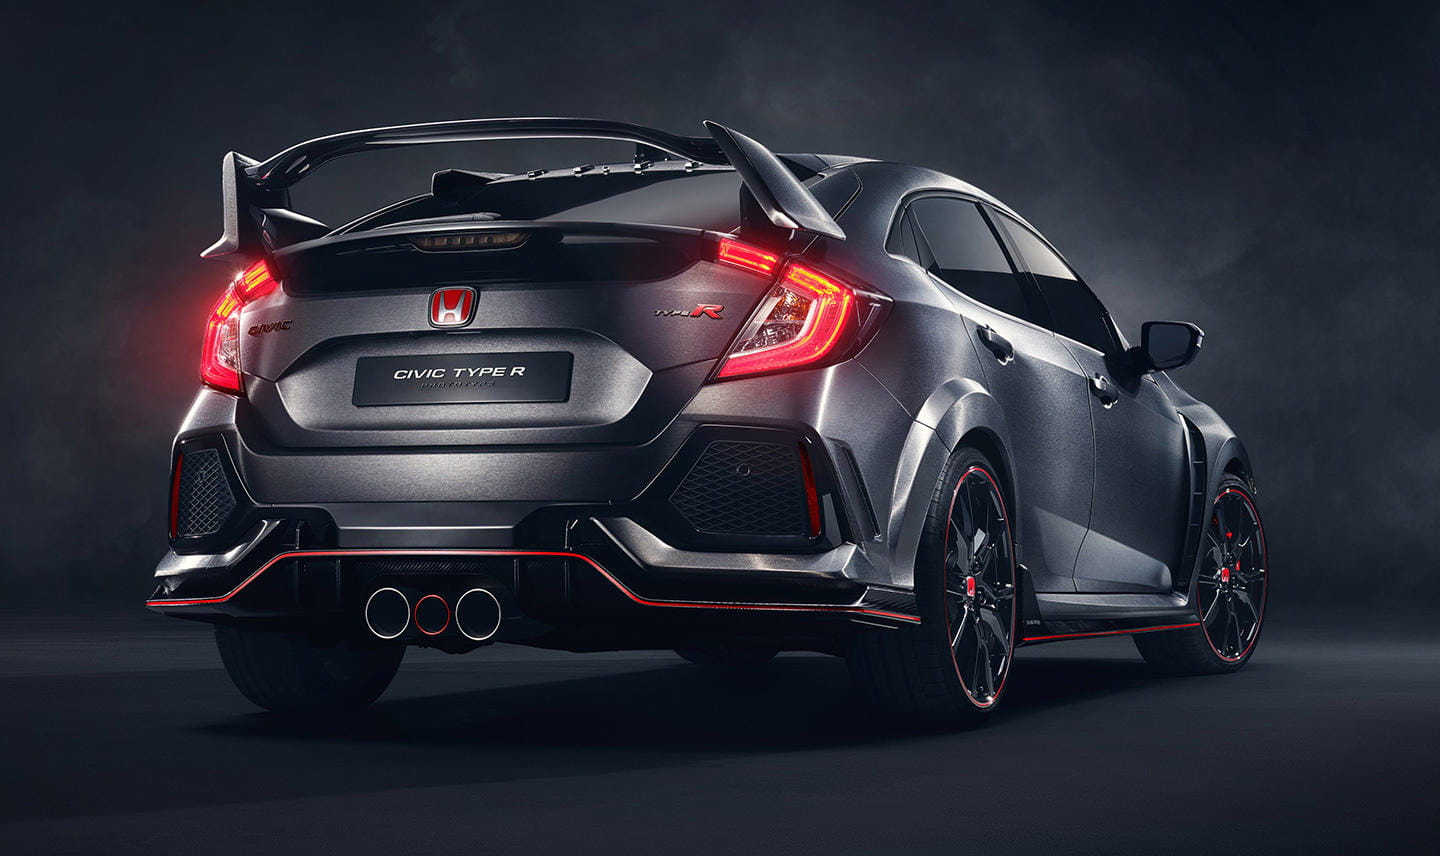 brutal as es el nuevo honda civic type r en 8 fotos m s bestia que nunca diariomotor. Black Bedroom Furniture Sets. Home Design Ideas